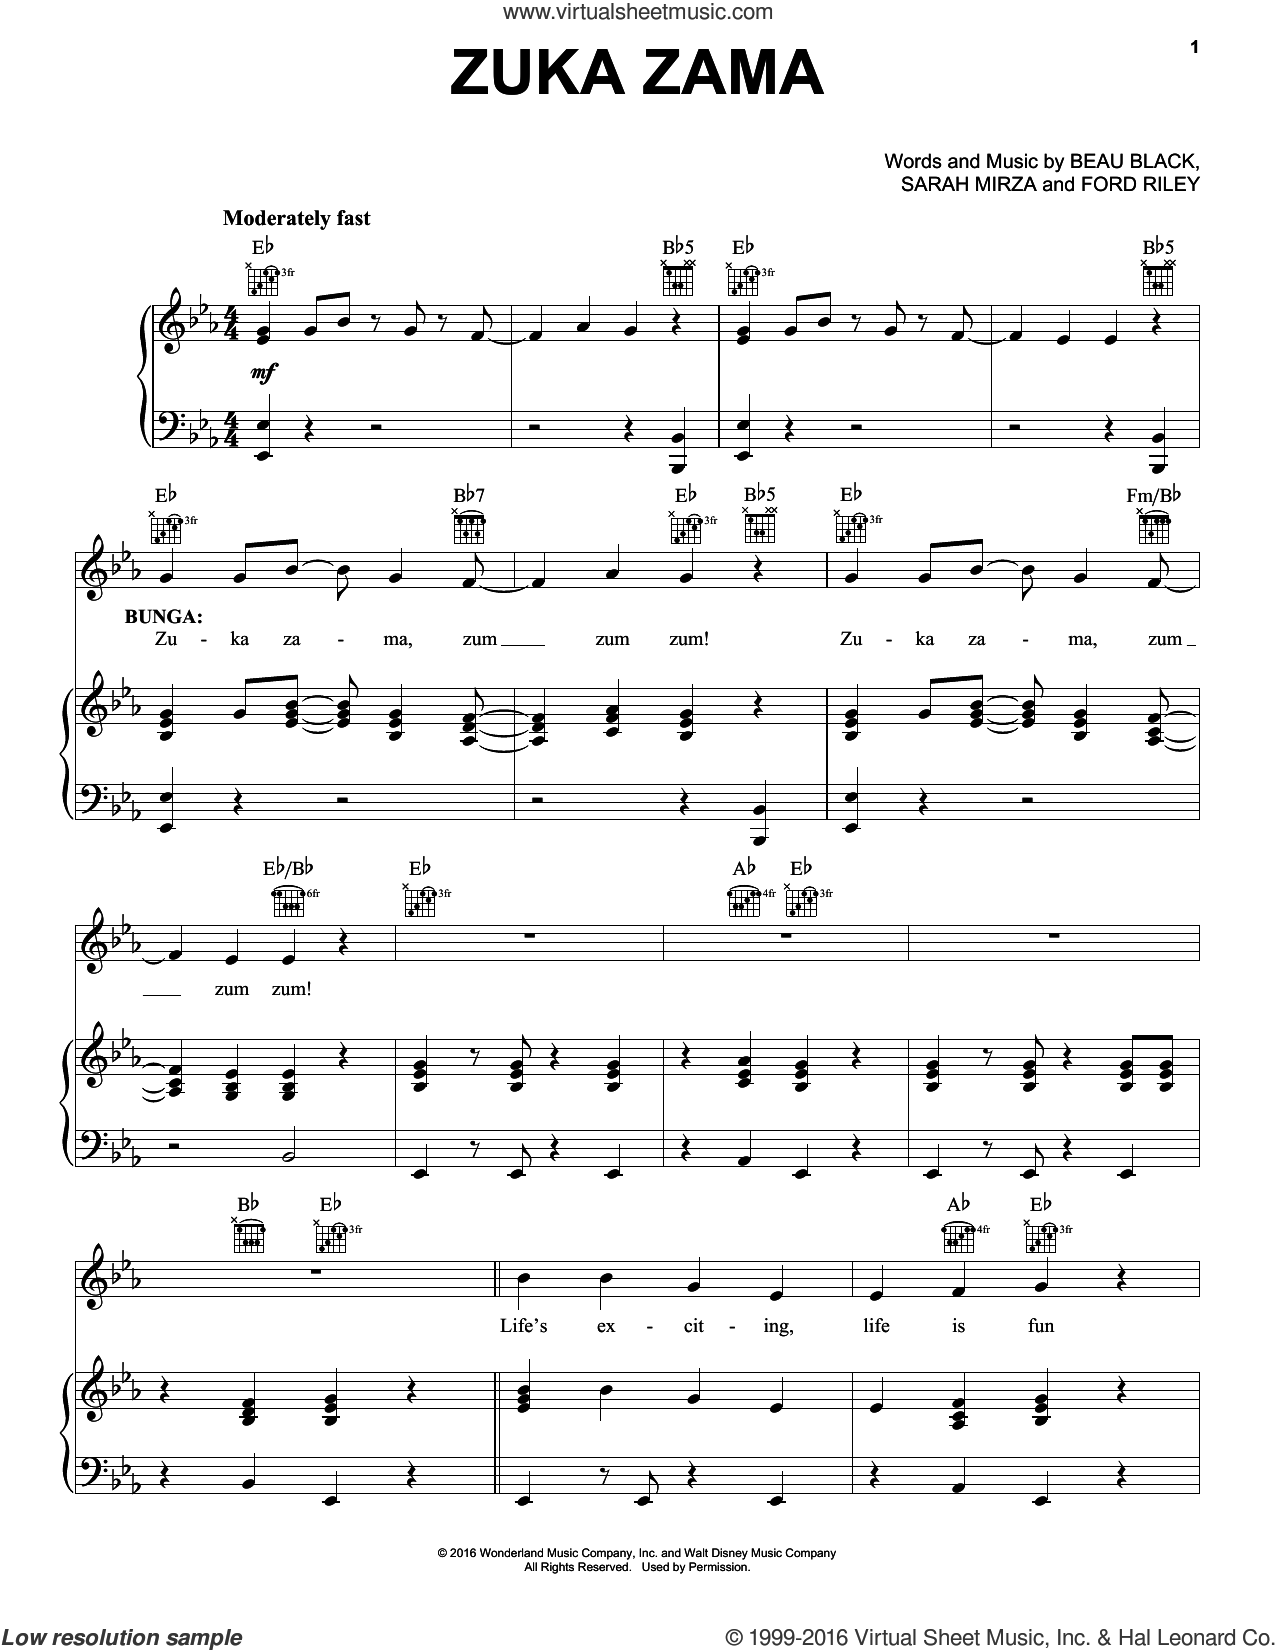 Zuka Zama sheet music for voice, piano or guitar by Beau Black, Ford Riley and Sarah Mirza, intermediate skill level